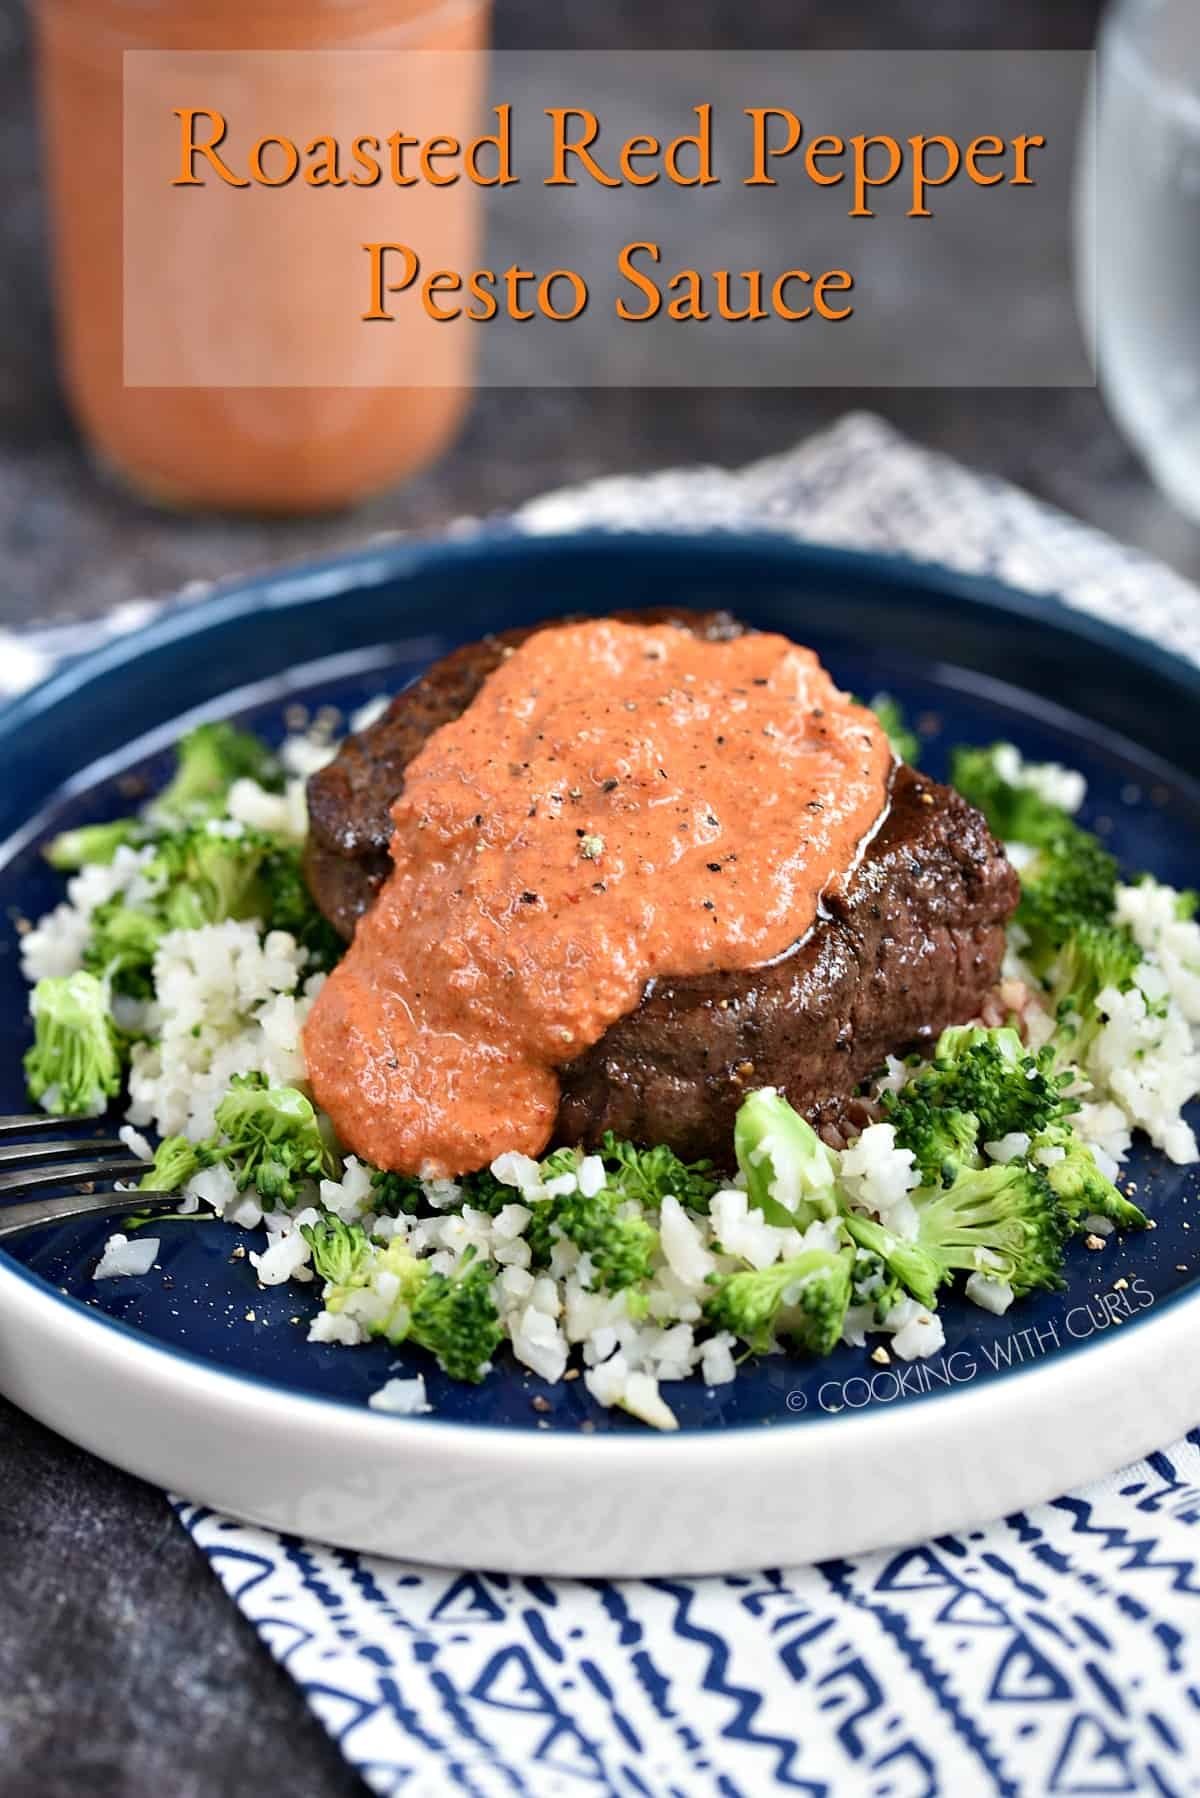 Steak drizzled with roasted red pepper pesto sauce on a bed of cauliflower and broccoli rice sitting on a blue plate.